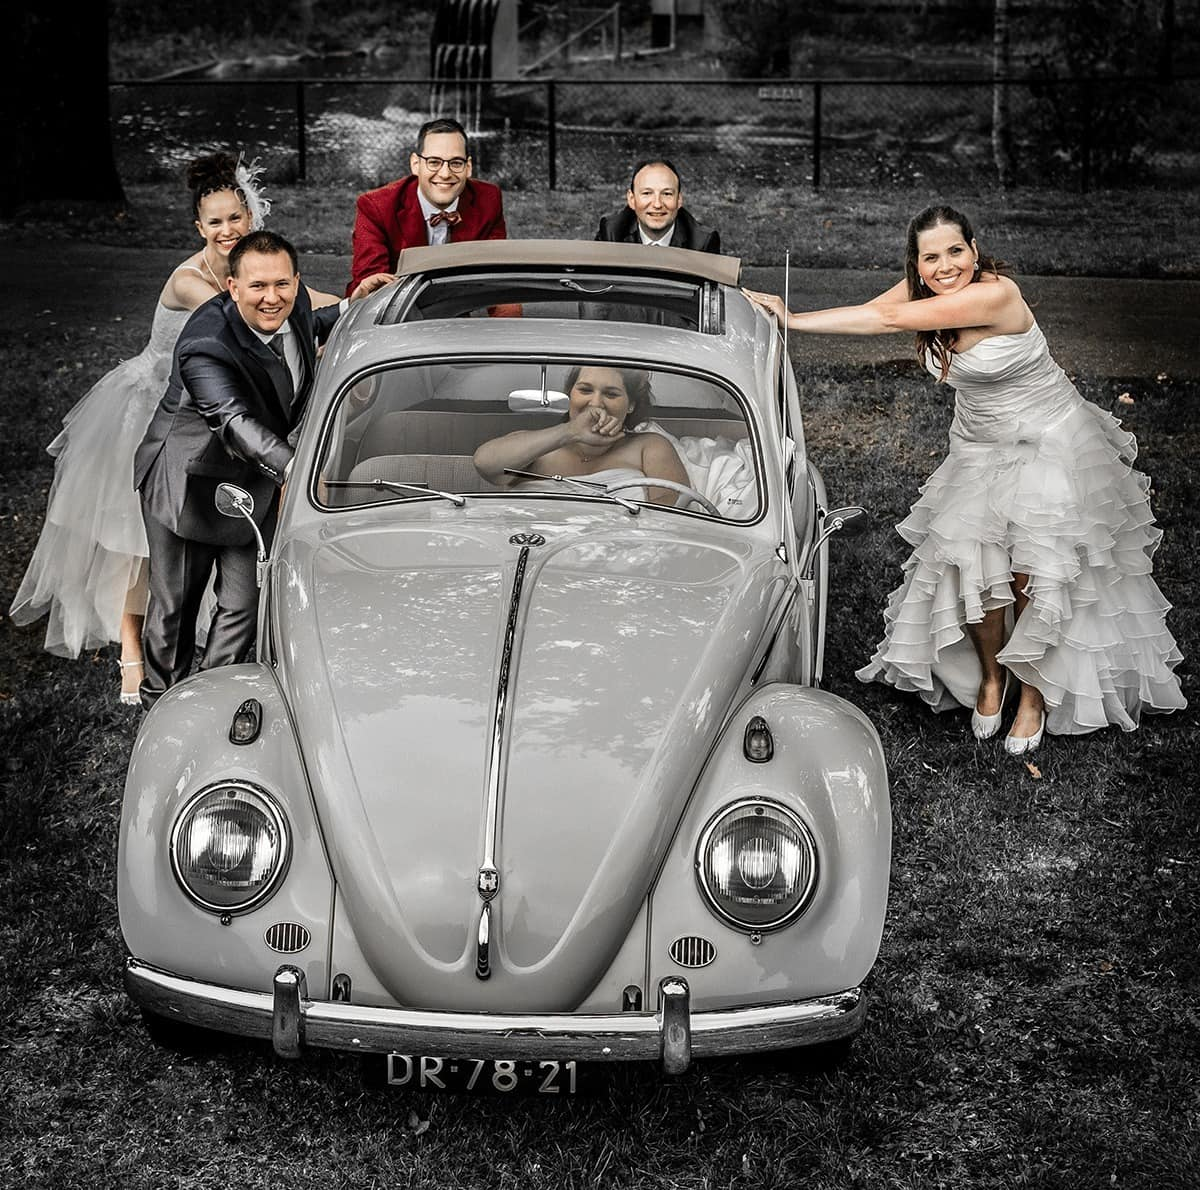 after-wedding-fotoshoot-hr-40-van-69